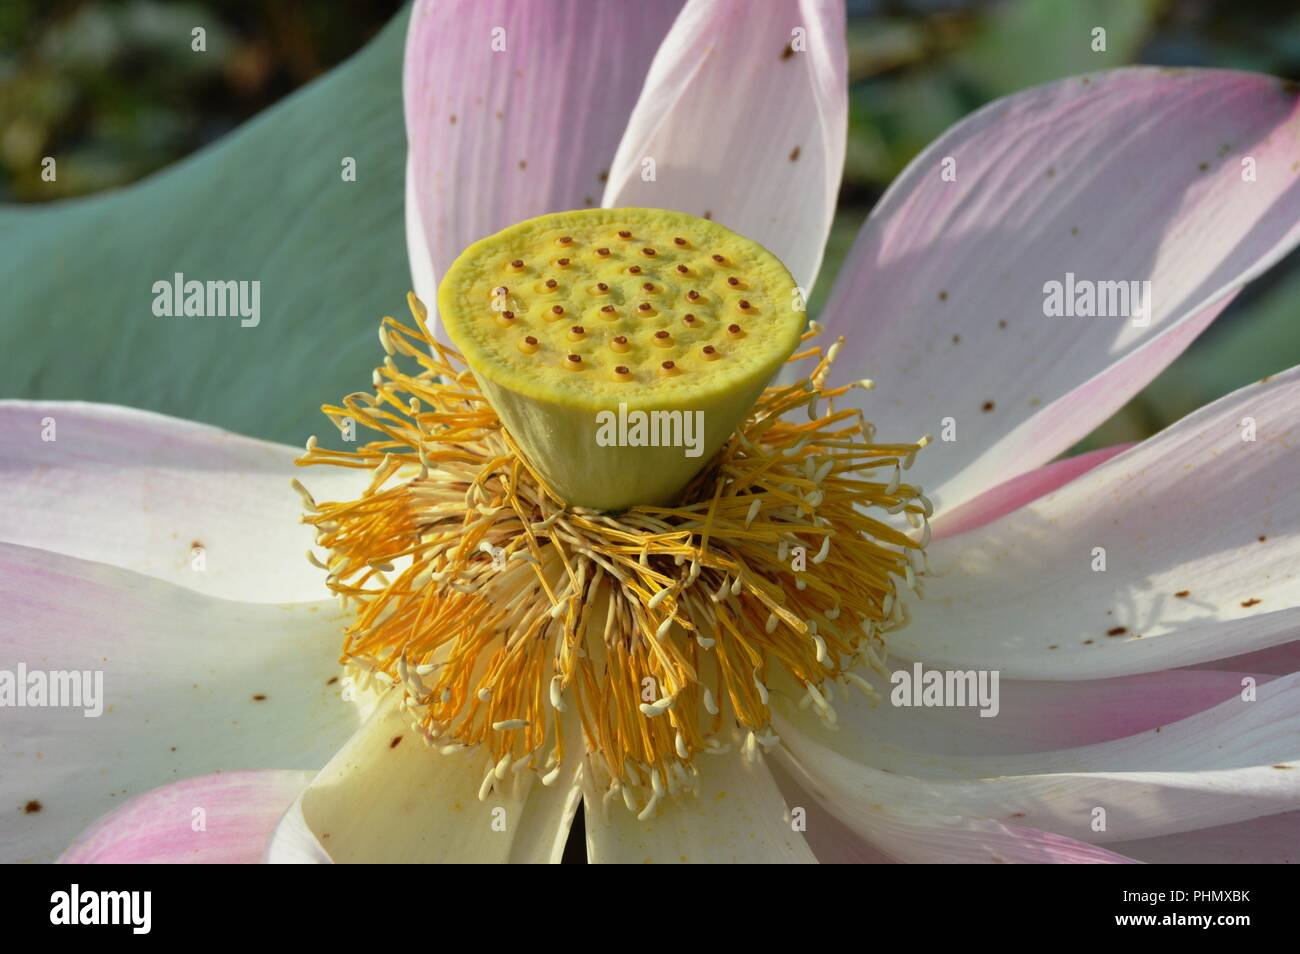 Lotus Leaves Close Up Stock Photos Lotus Leaves Close Up Stock